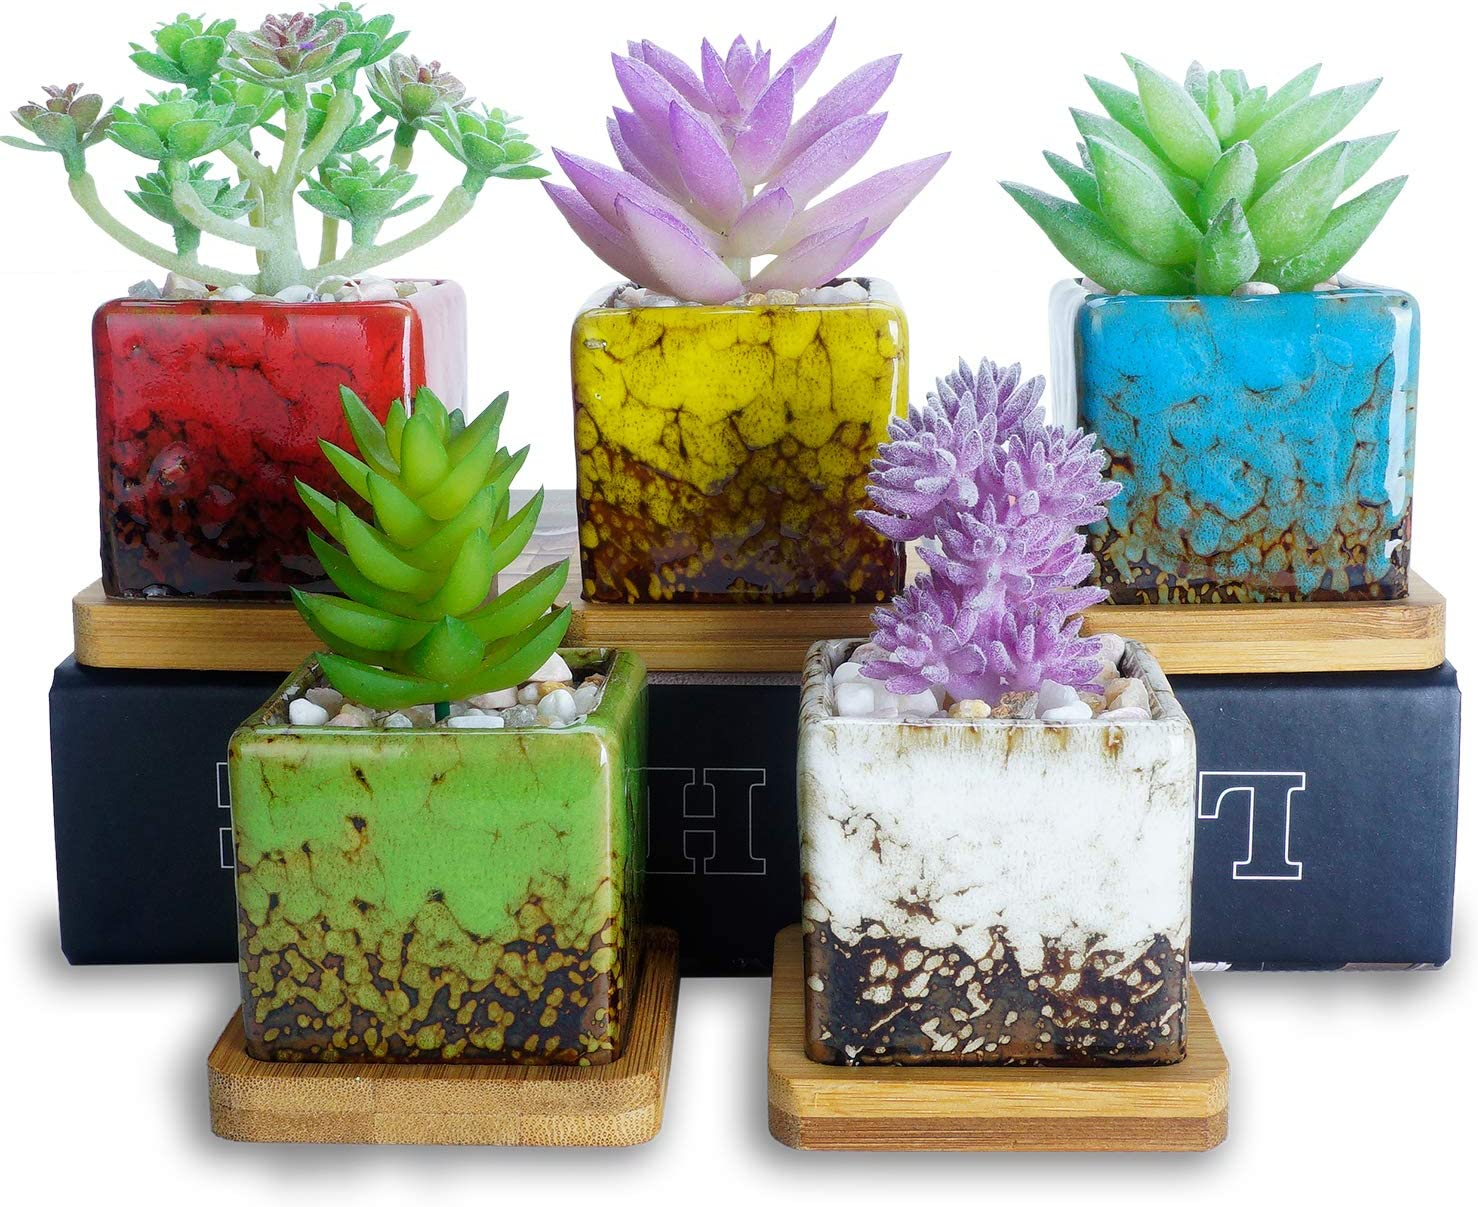 Succulent Planters, Artketty 2.1 Inch Ceramic Succulent Pots with Drainage Bamboo Tray Mini Glazed Square Garden Pots for Cactus,Flower,herb Perfect for Windowsill or Desk Set of 5